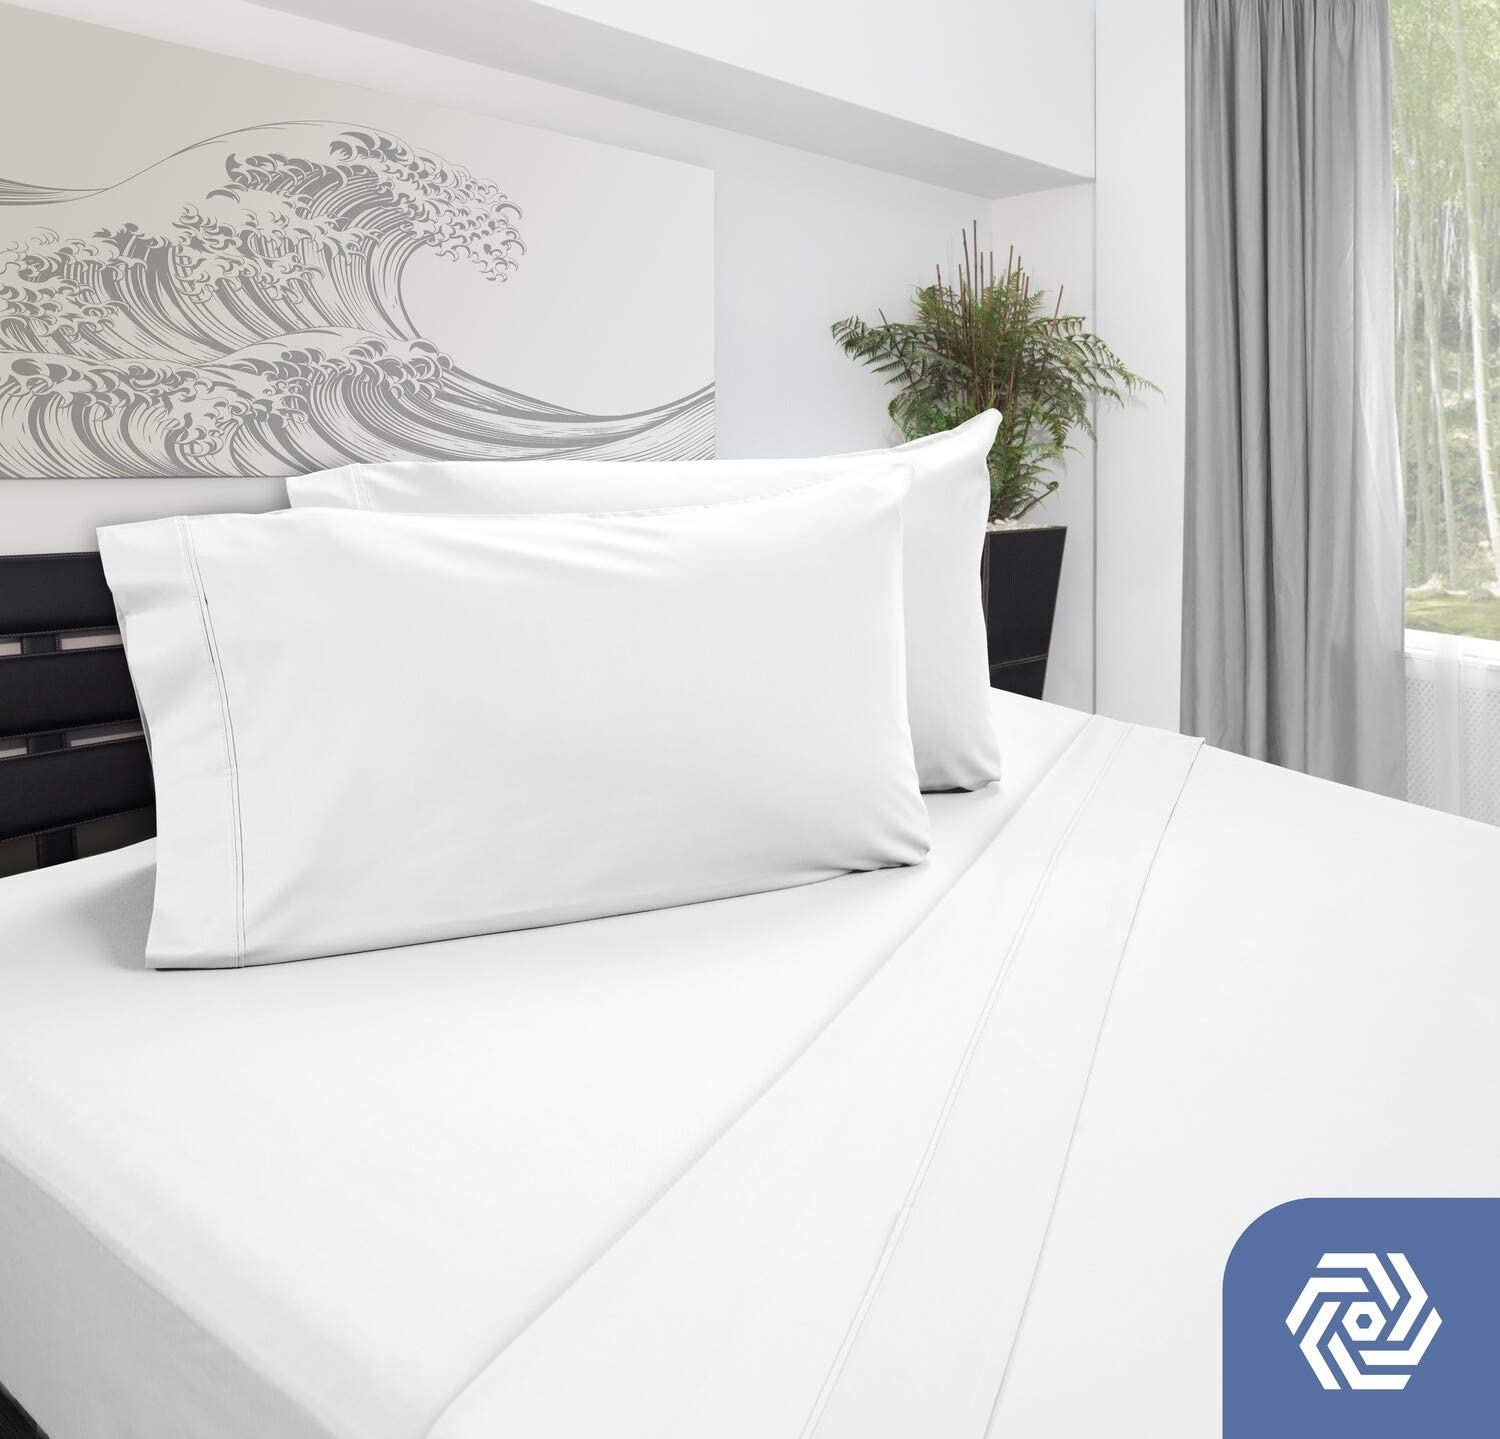 Dreamfit Sheets Dreamchill Enhanced Bamboo 18%OFF with New Im Set 即納最大半額 Sheet